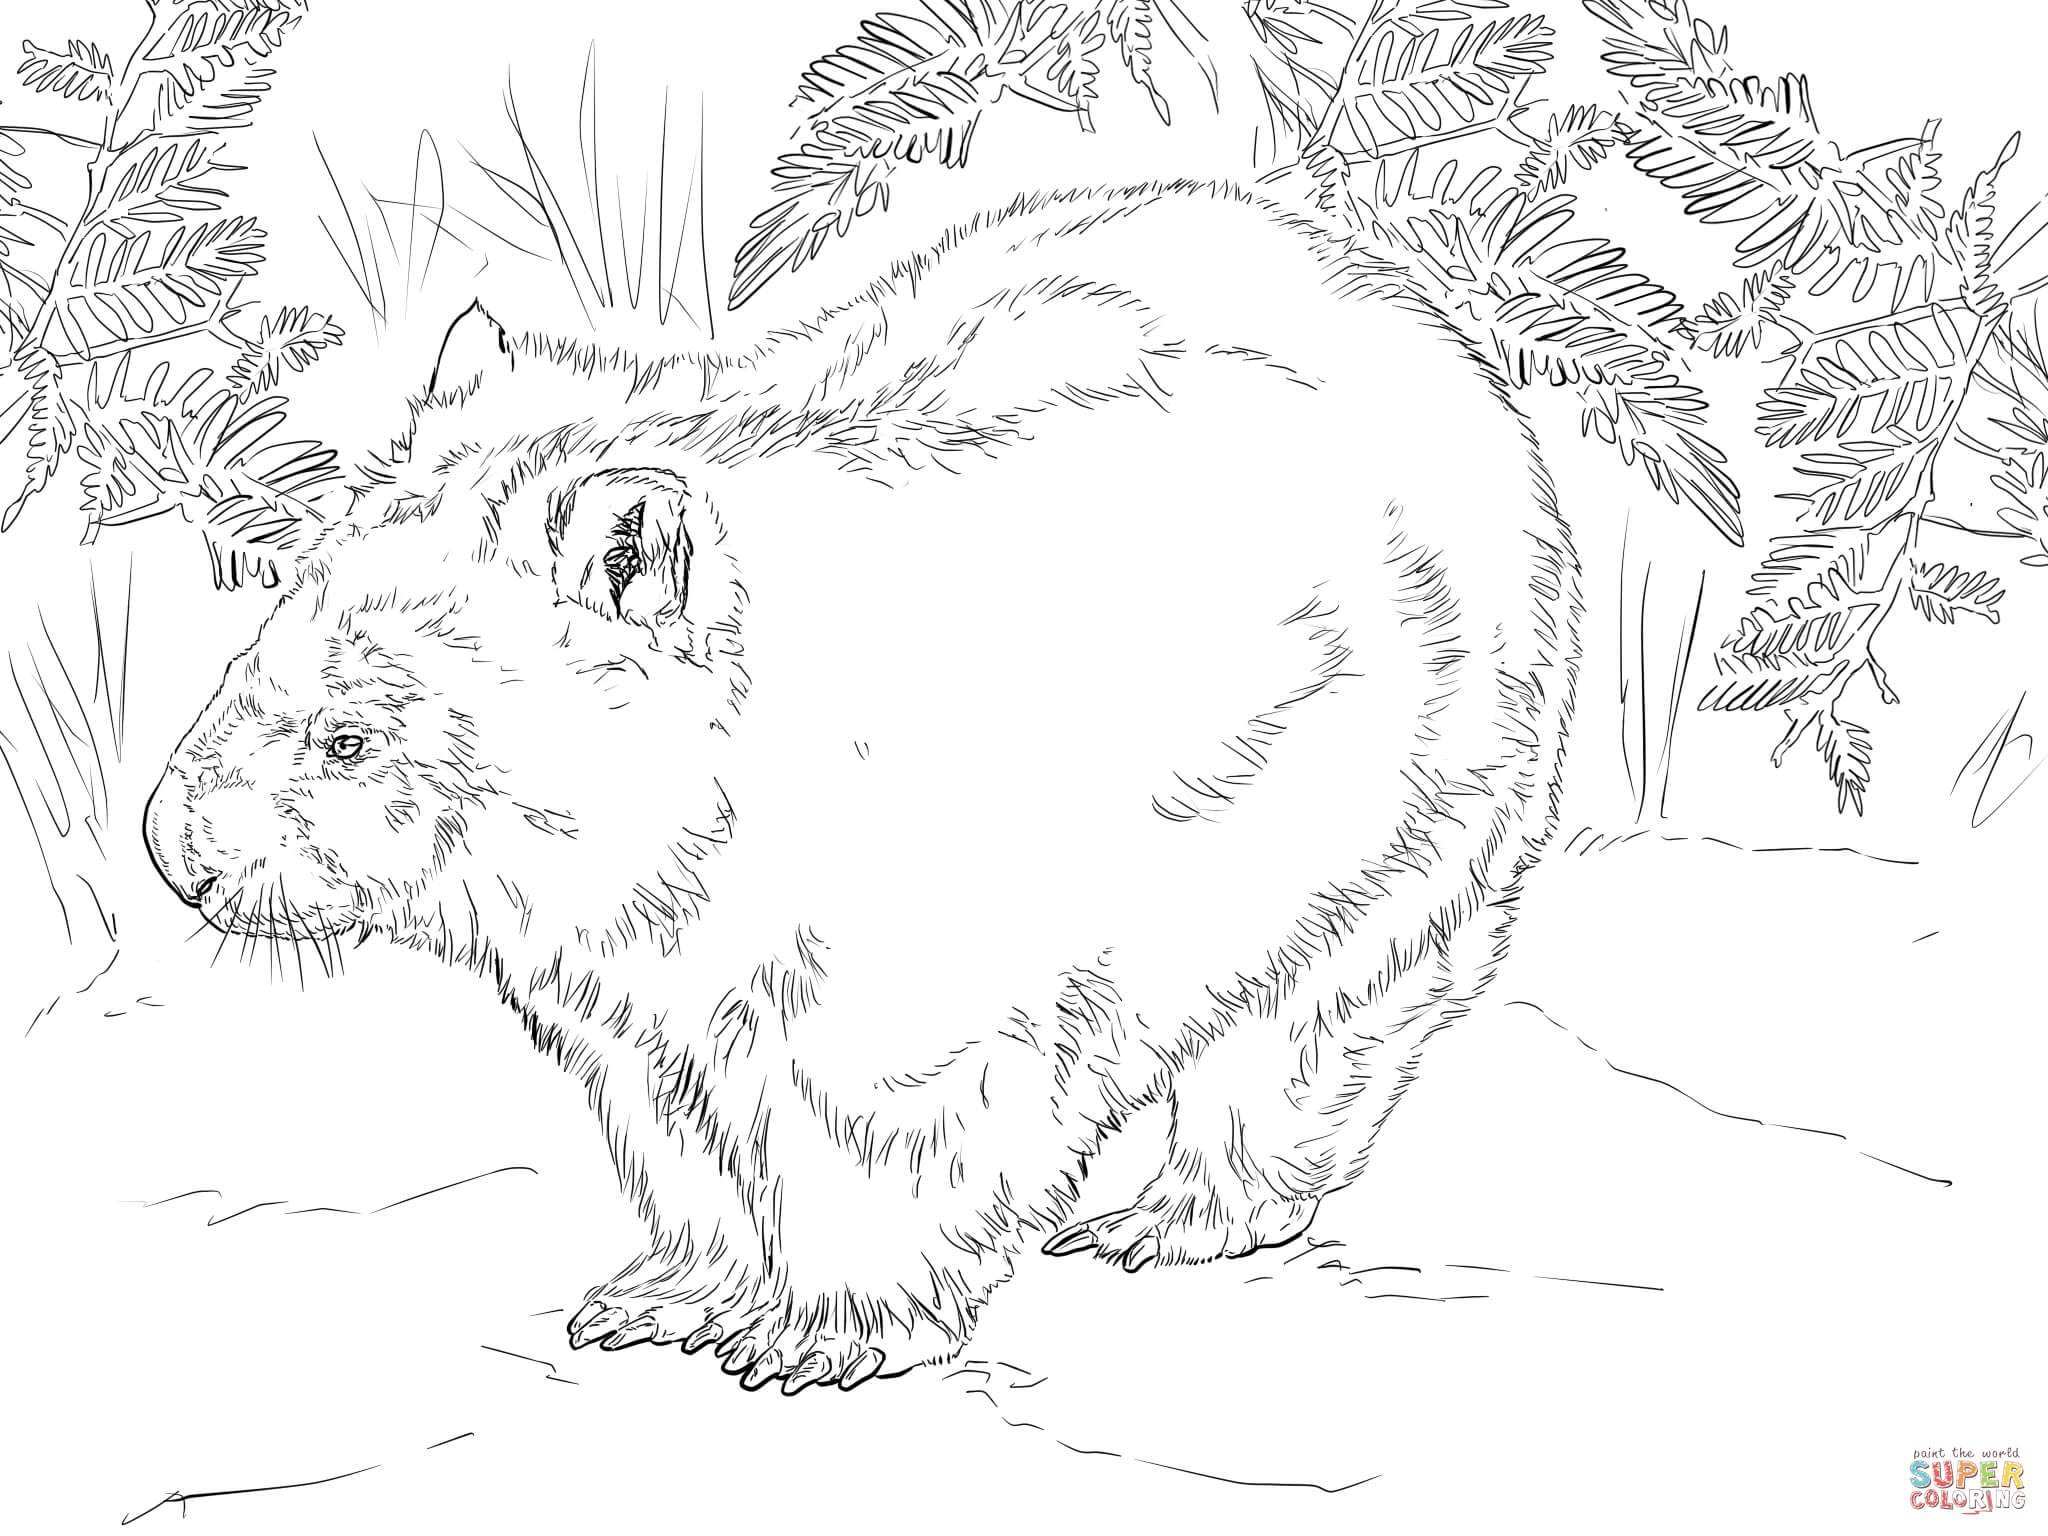 wombat from australia coloring page free printable coloring pages